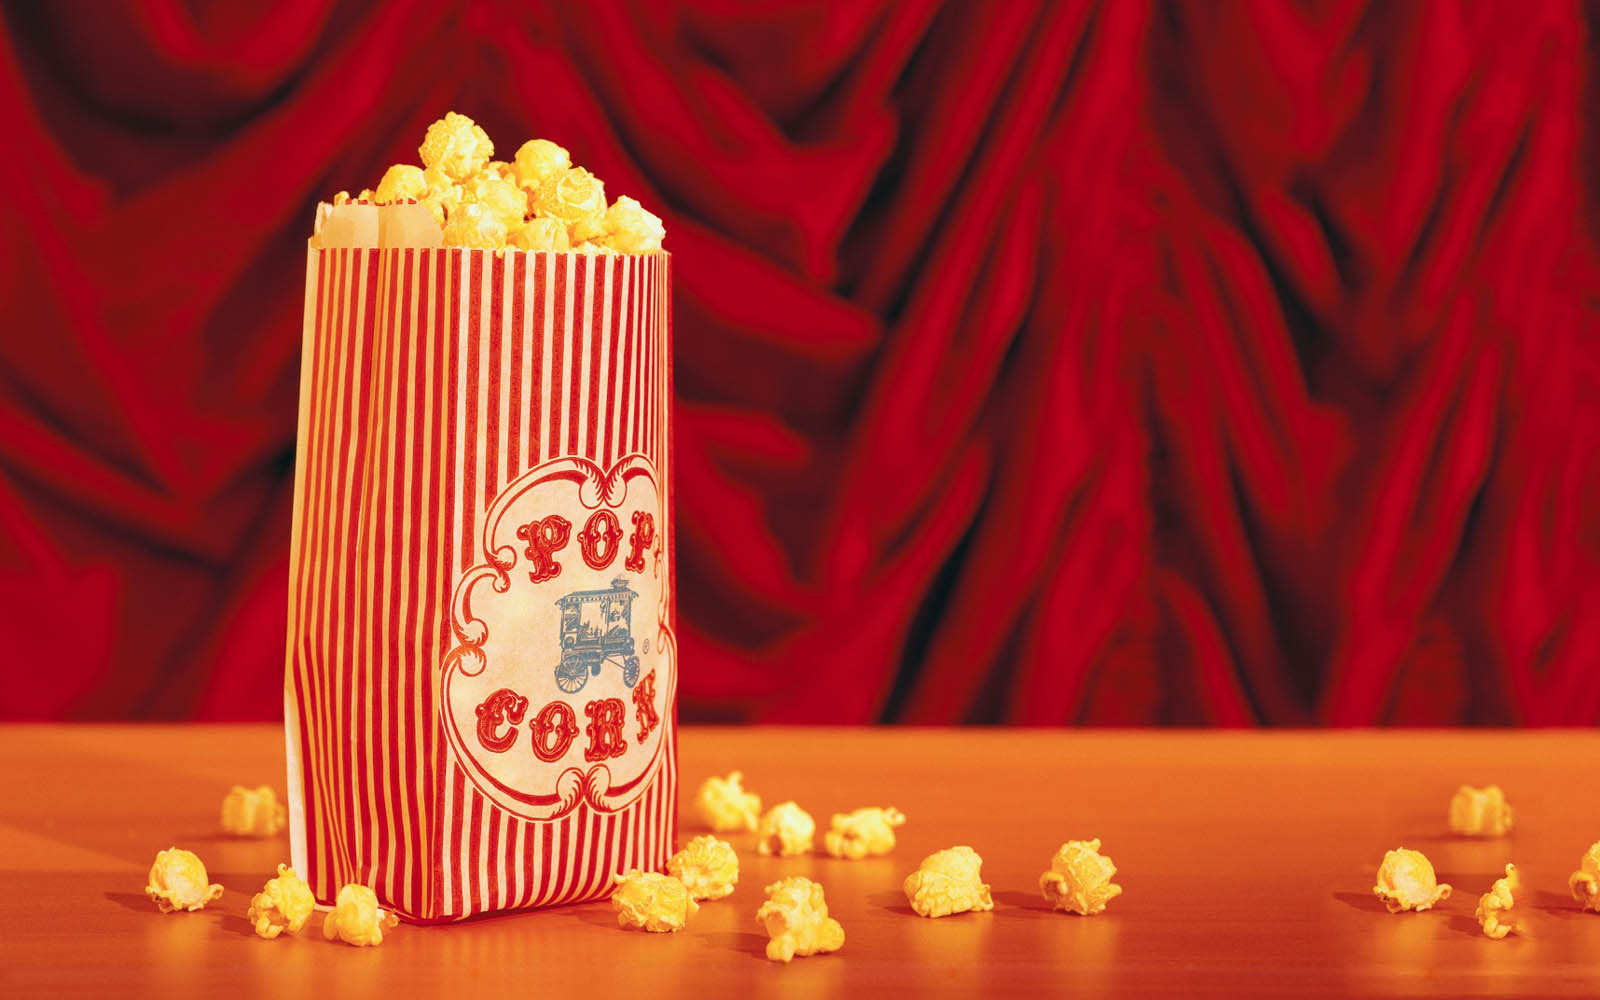 popcorn photos wallpaper 66879